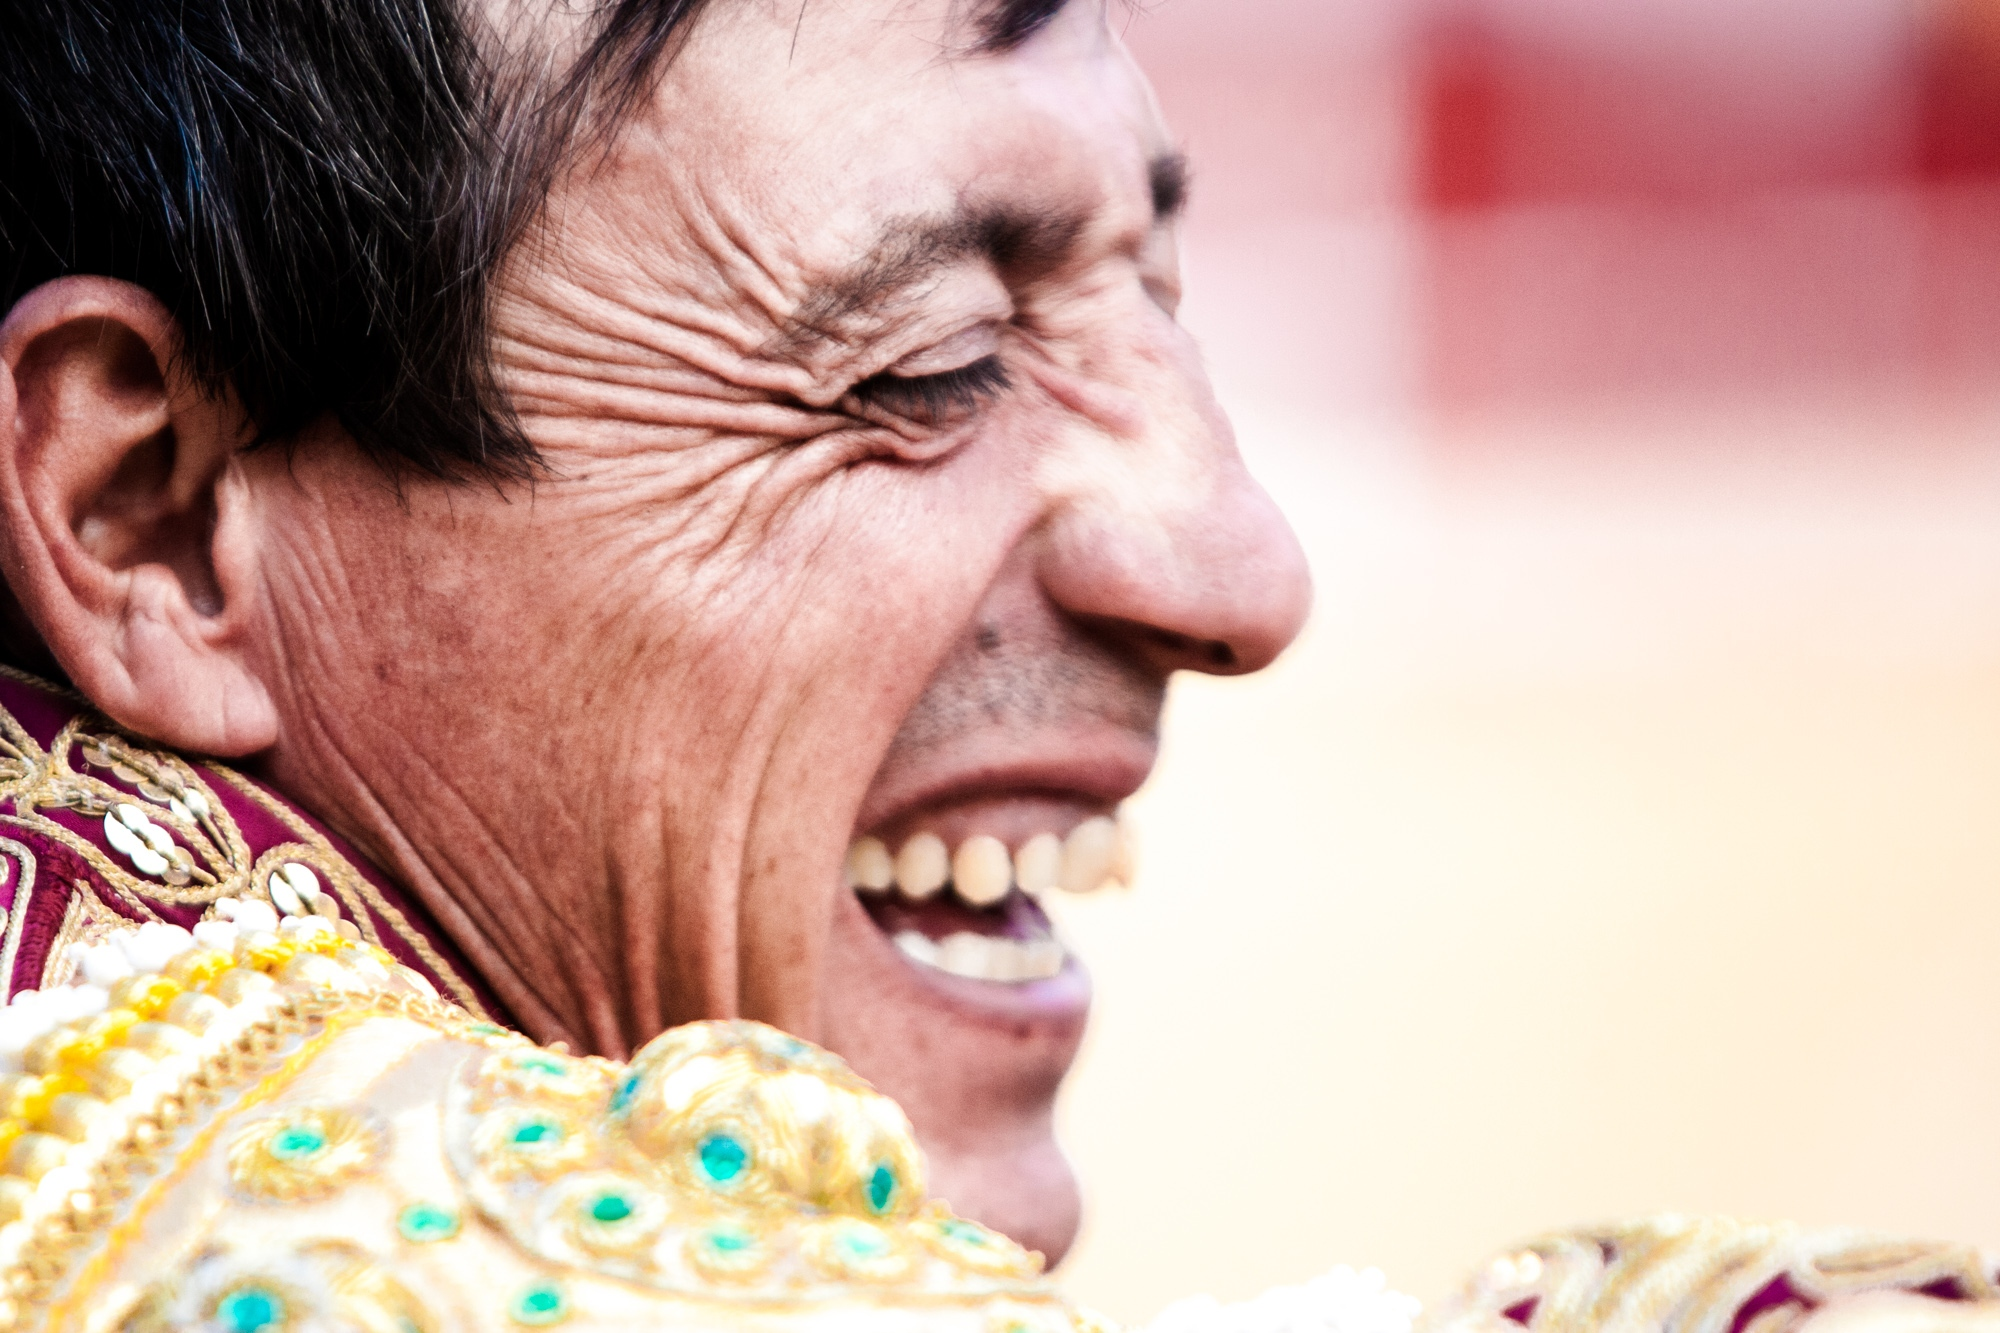 Art and Documentary Photography - Loading Oto_Bullfight_30.jpg